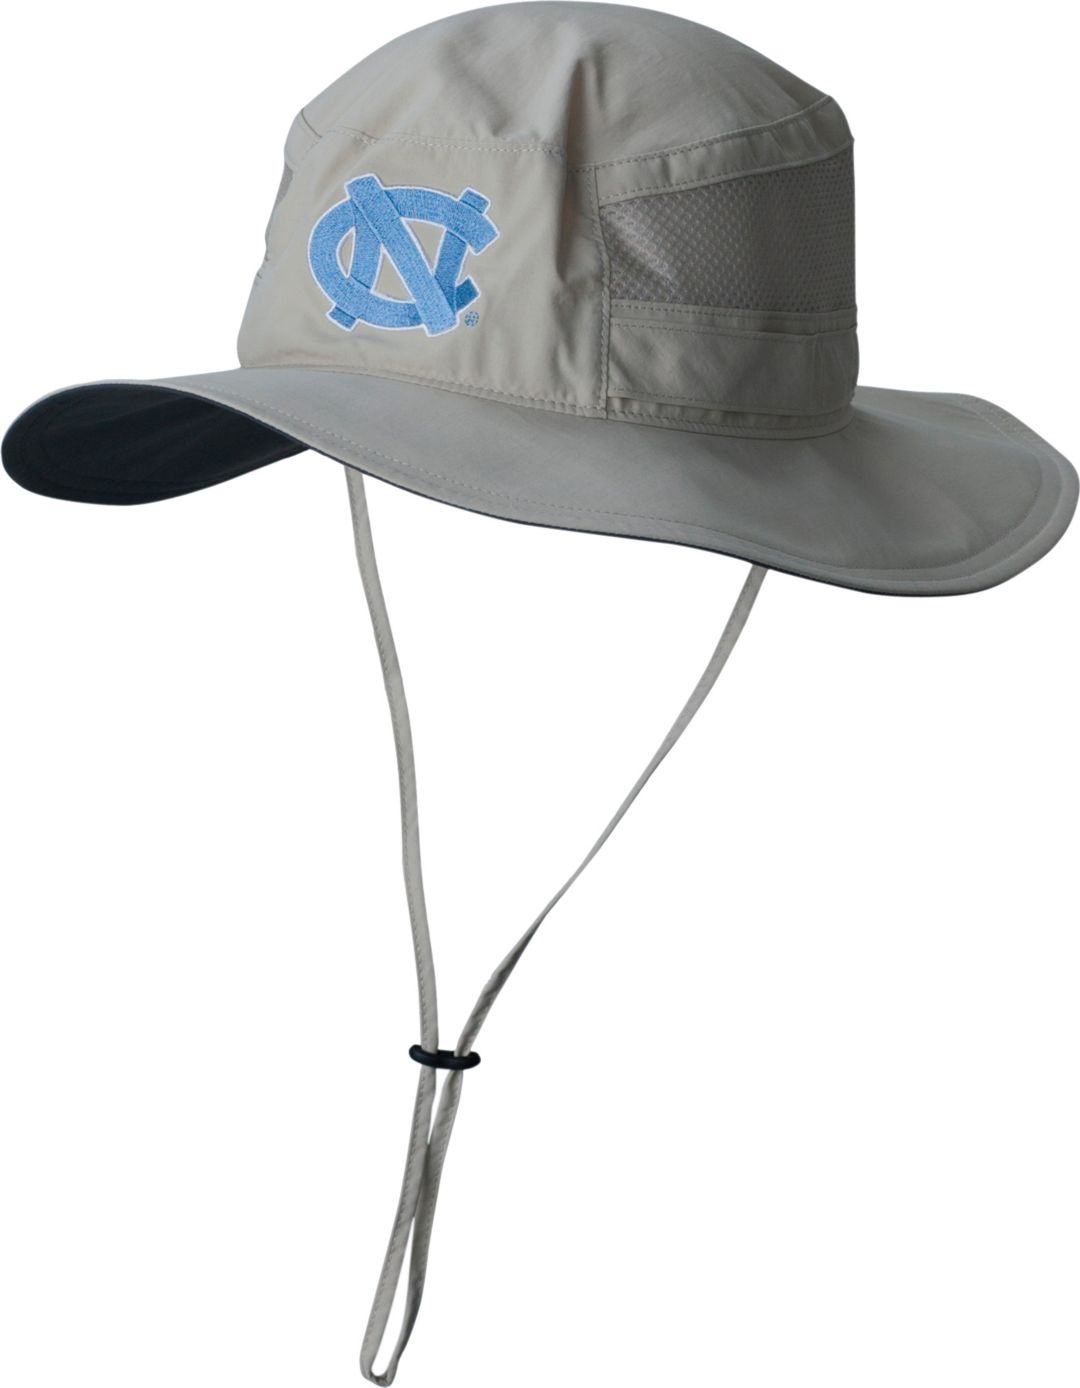 24daa40c Columbia Men's North Carolina Tar Heels Khaki Bora Bora Booney ll Hat 1